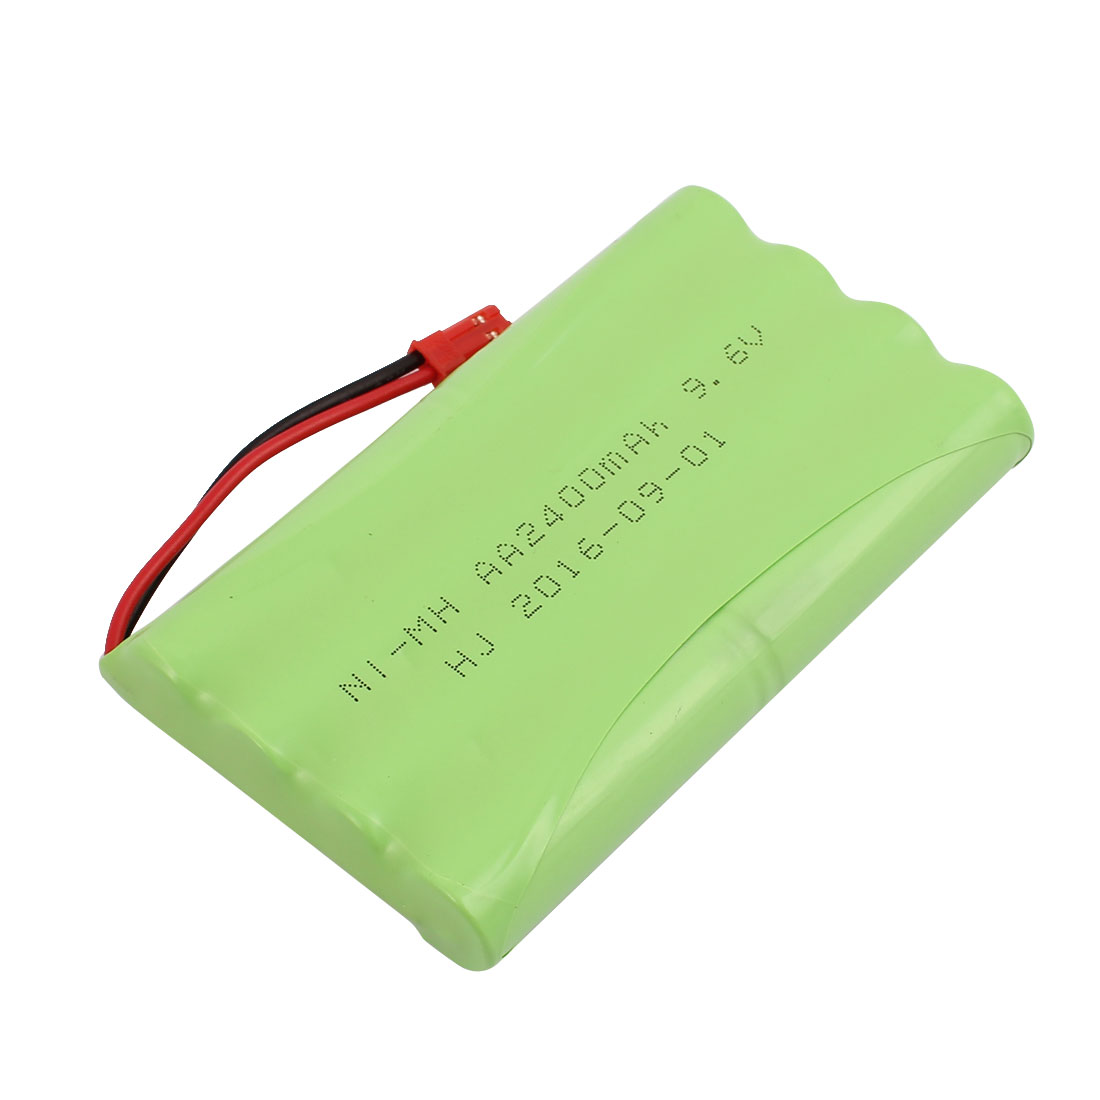 JST-2P AA 9.6V 2400mAh Ni-MH Rechargeable Battery Pack for RC Car Aircraft